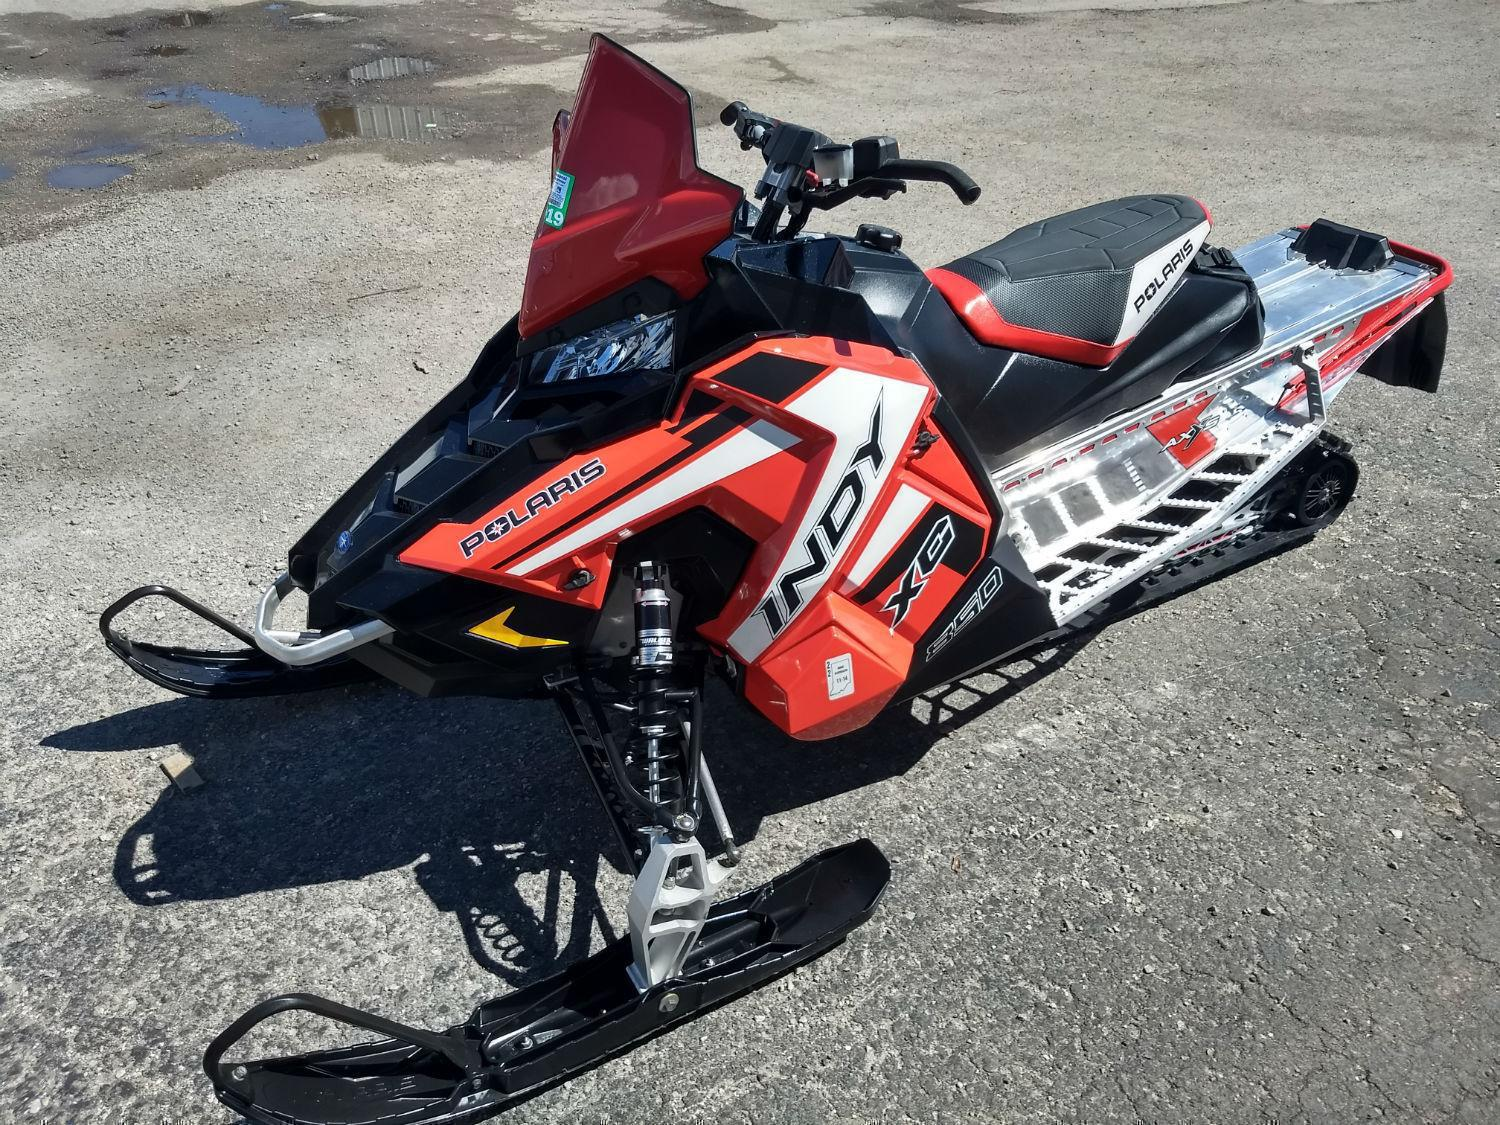 Snowmobile from Timbersled and Polaris Industries Schnelker